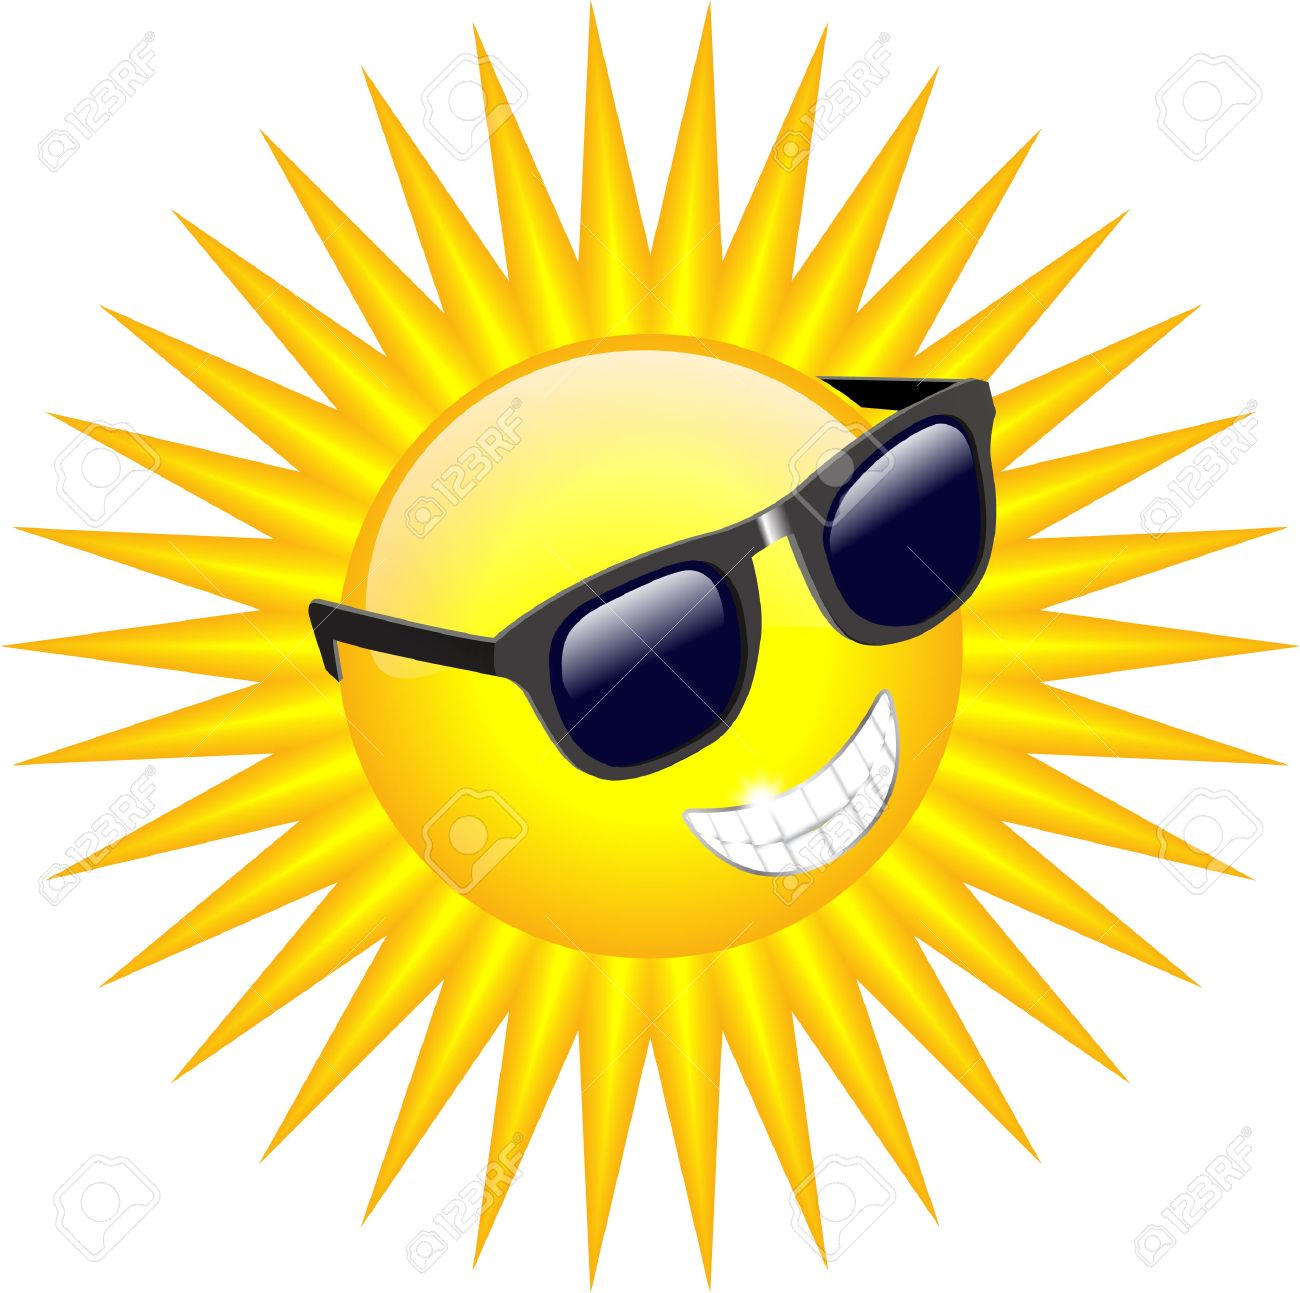 COOL SUN WITH SUNGLASSES.